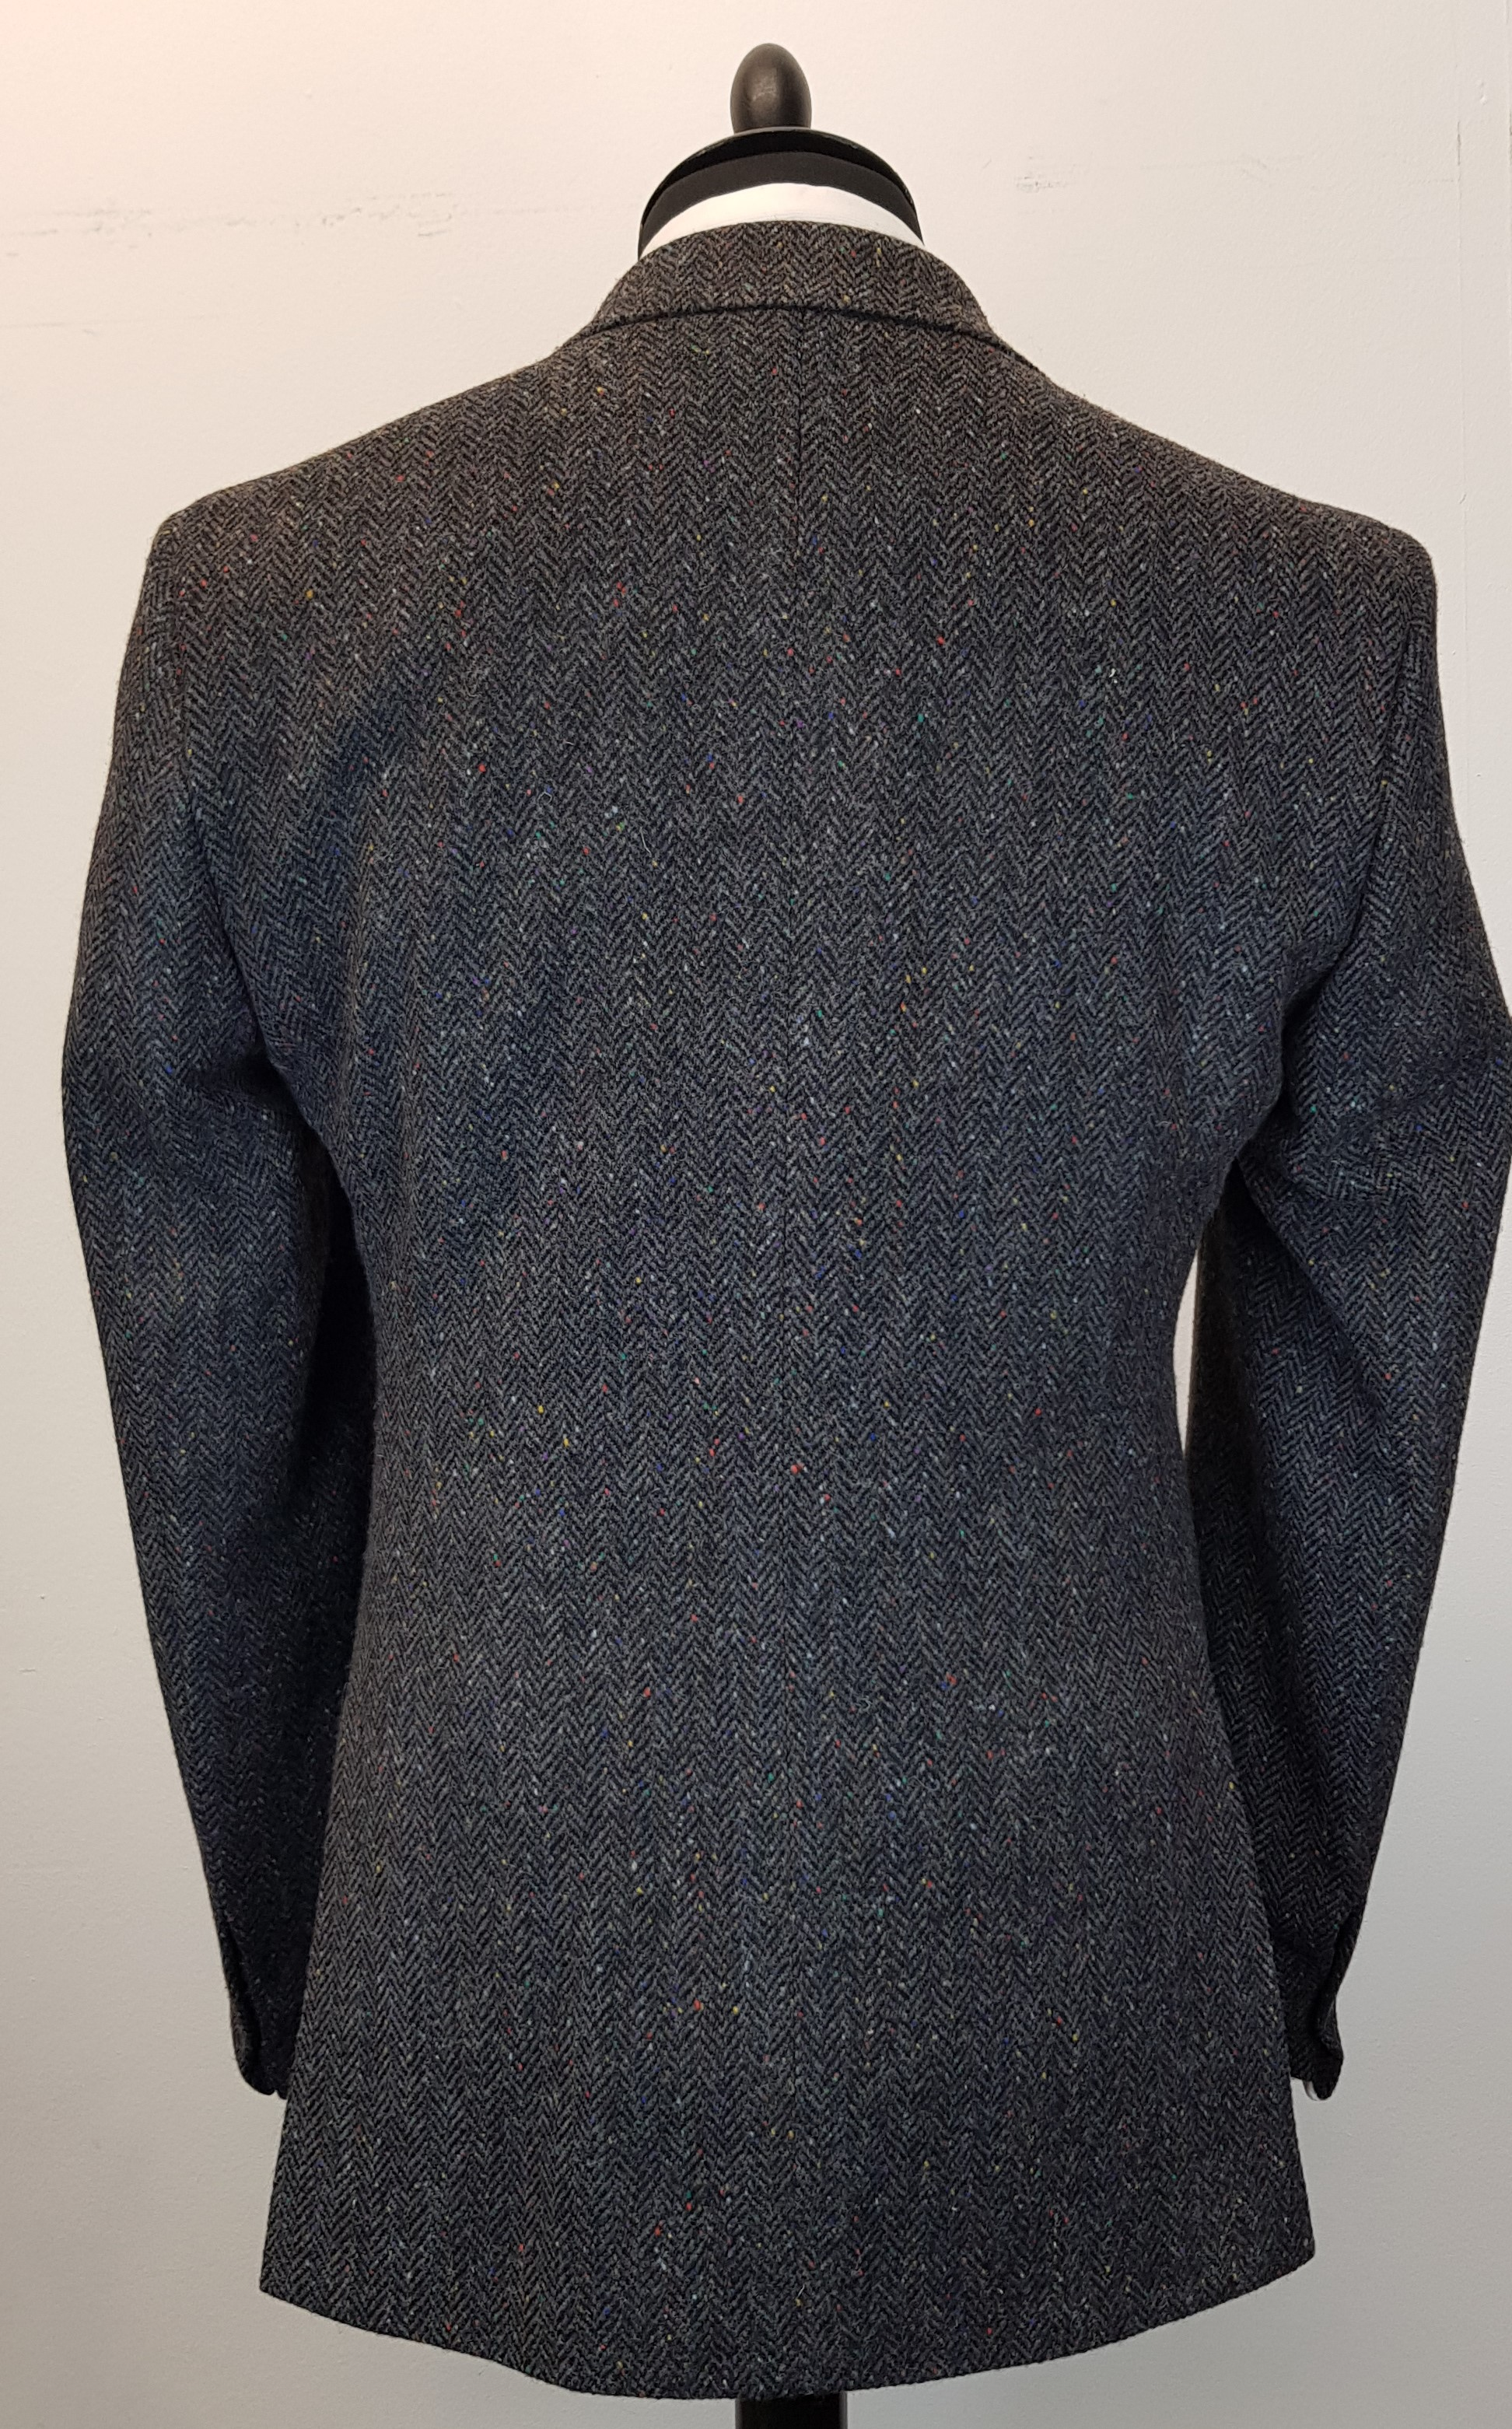 3 piece Donegal tweed suit (12).jpg